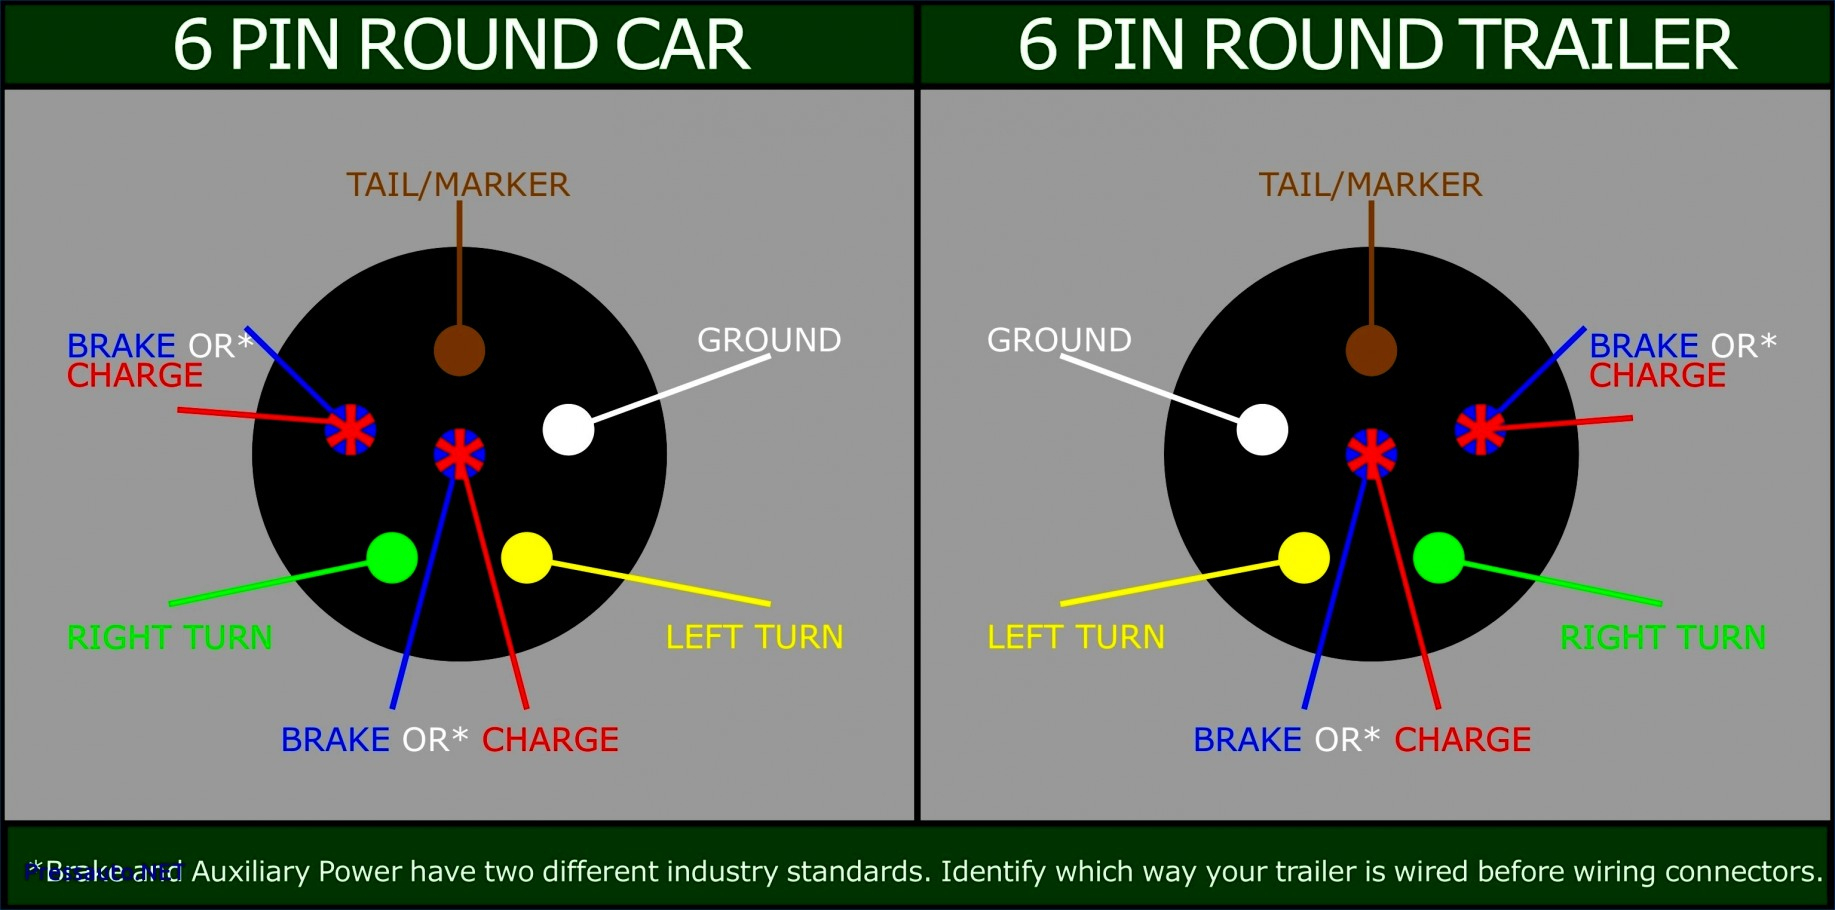 6 Round Trailer Wiring Diagram - Wiring Diagram Explained - 6 Round Trailer Wiring Diagram